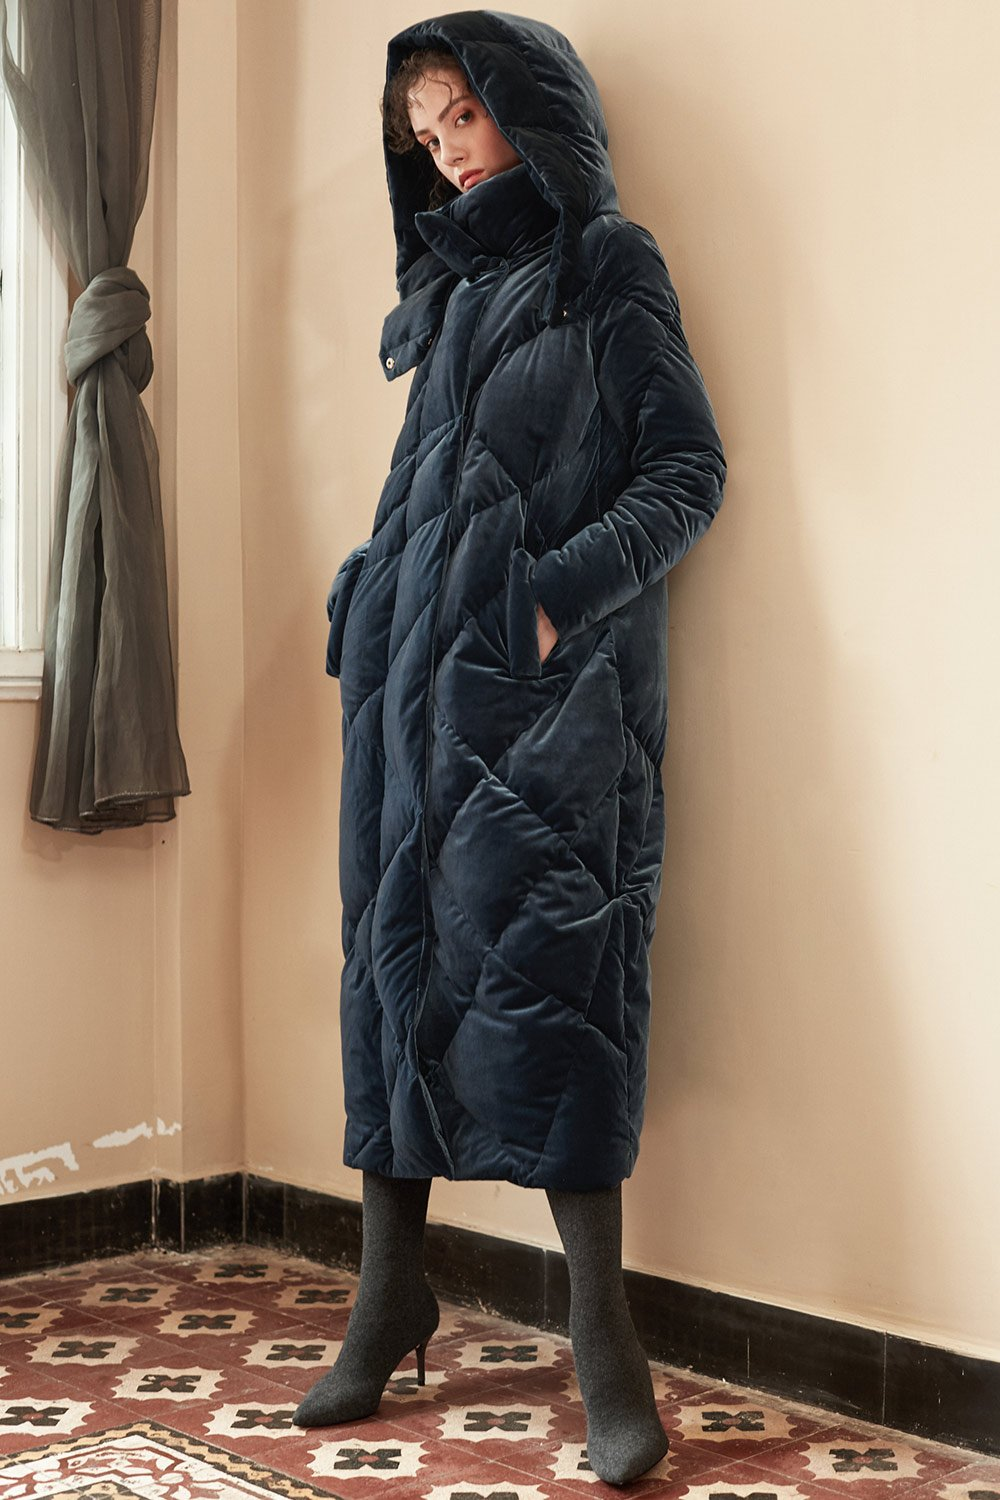 - LONG PUFFER COAT.NYLON VELVET PUFFER COAT / Genuine People $275